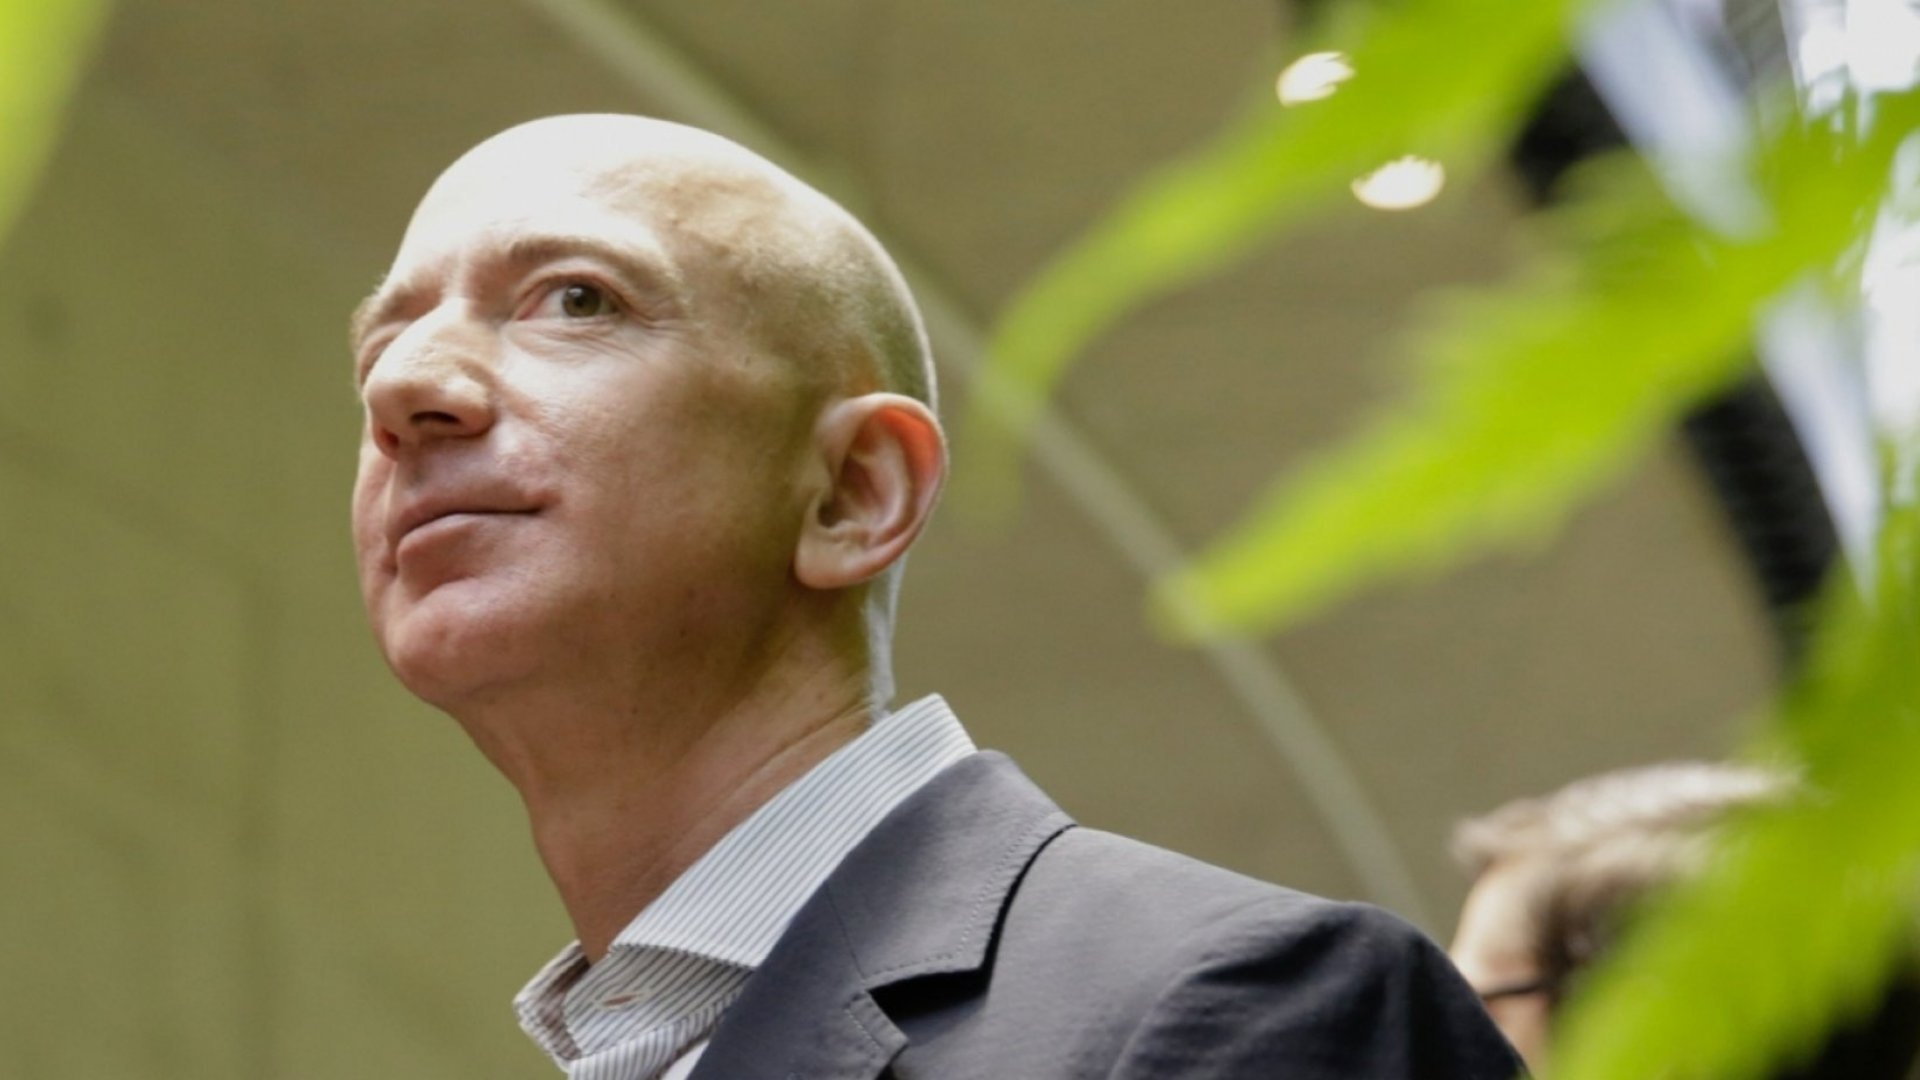 Chief Executive Officer of Amazon, Jeff Bezos